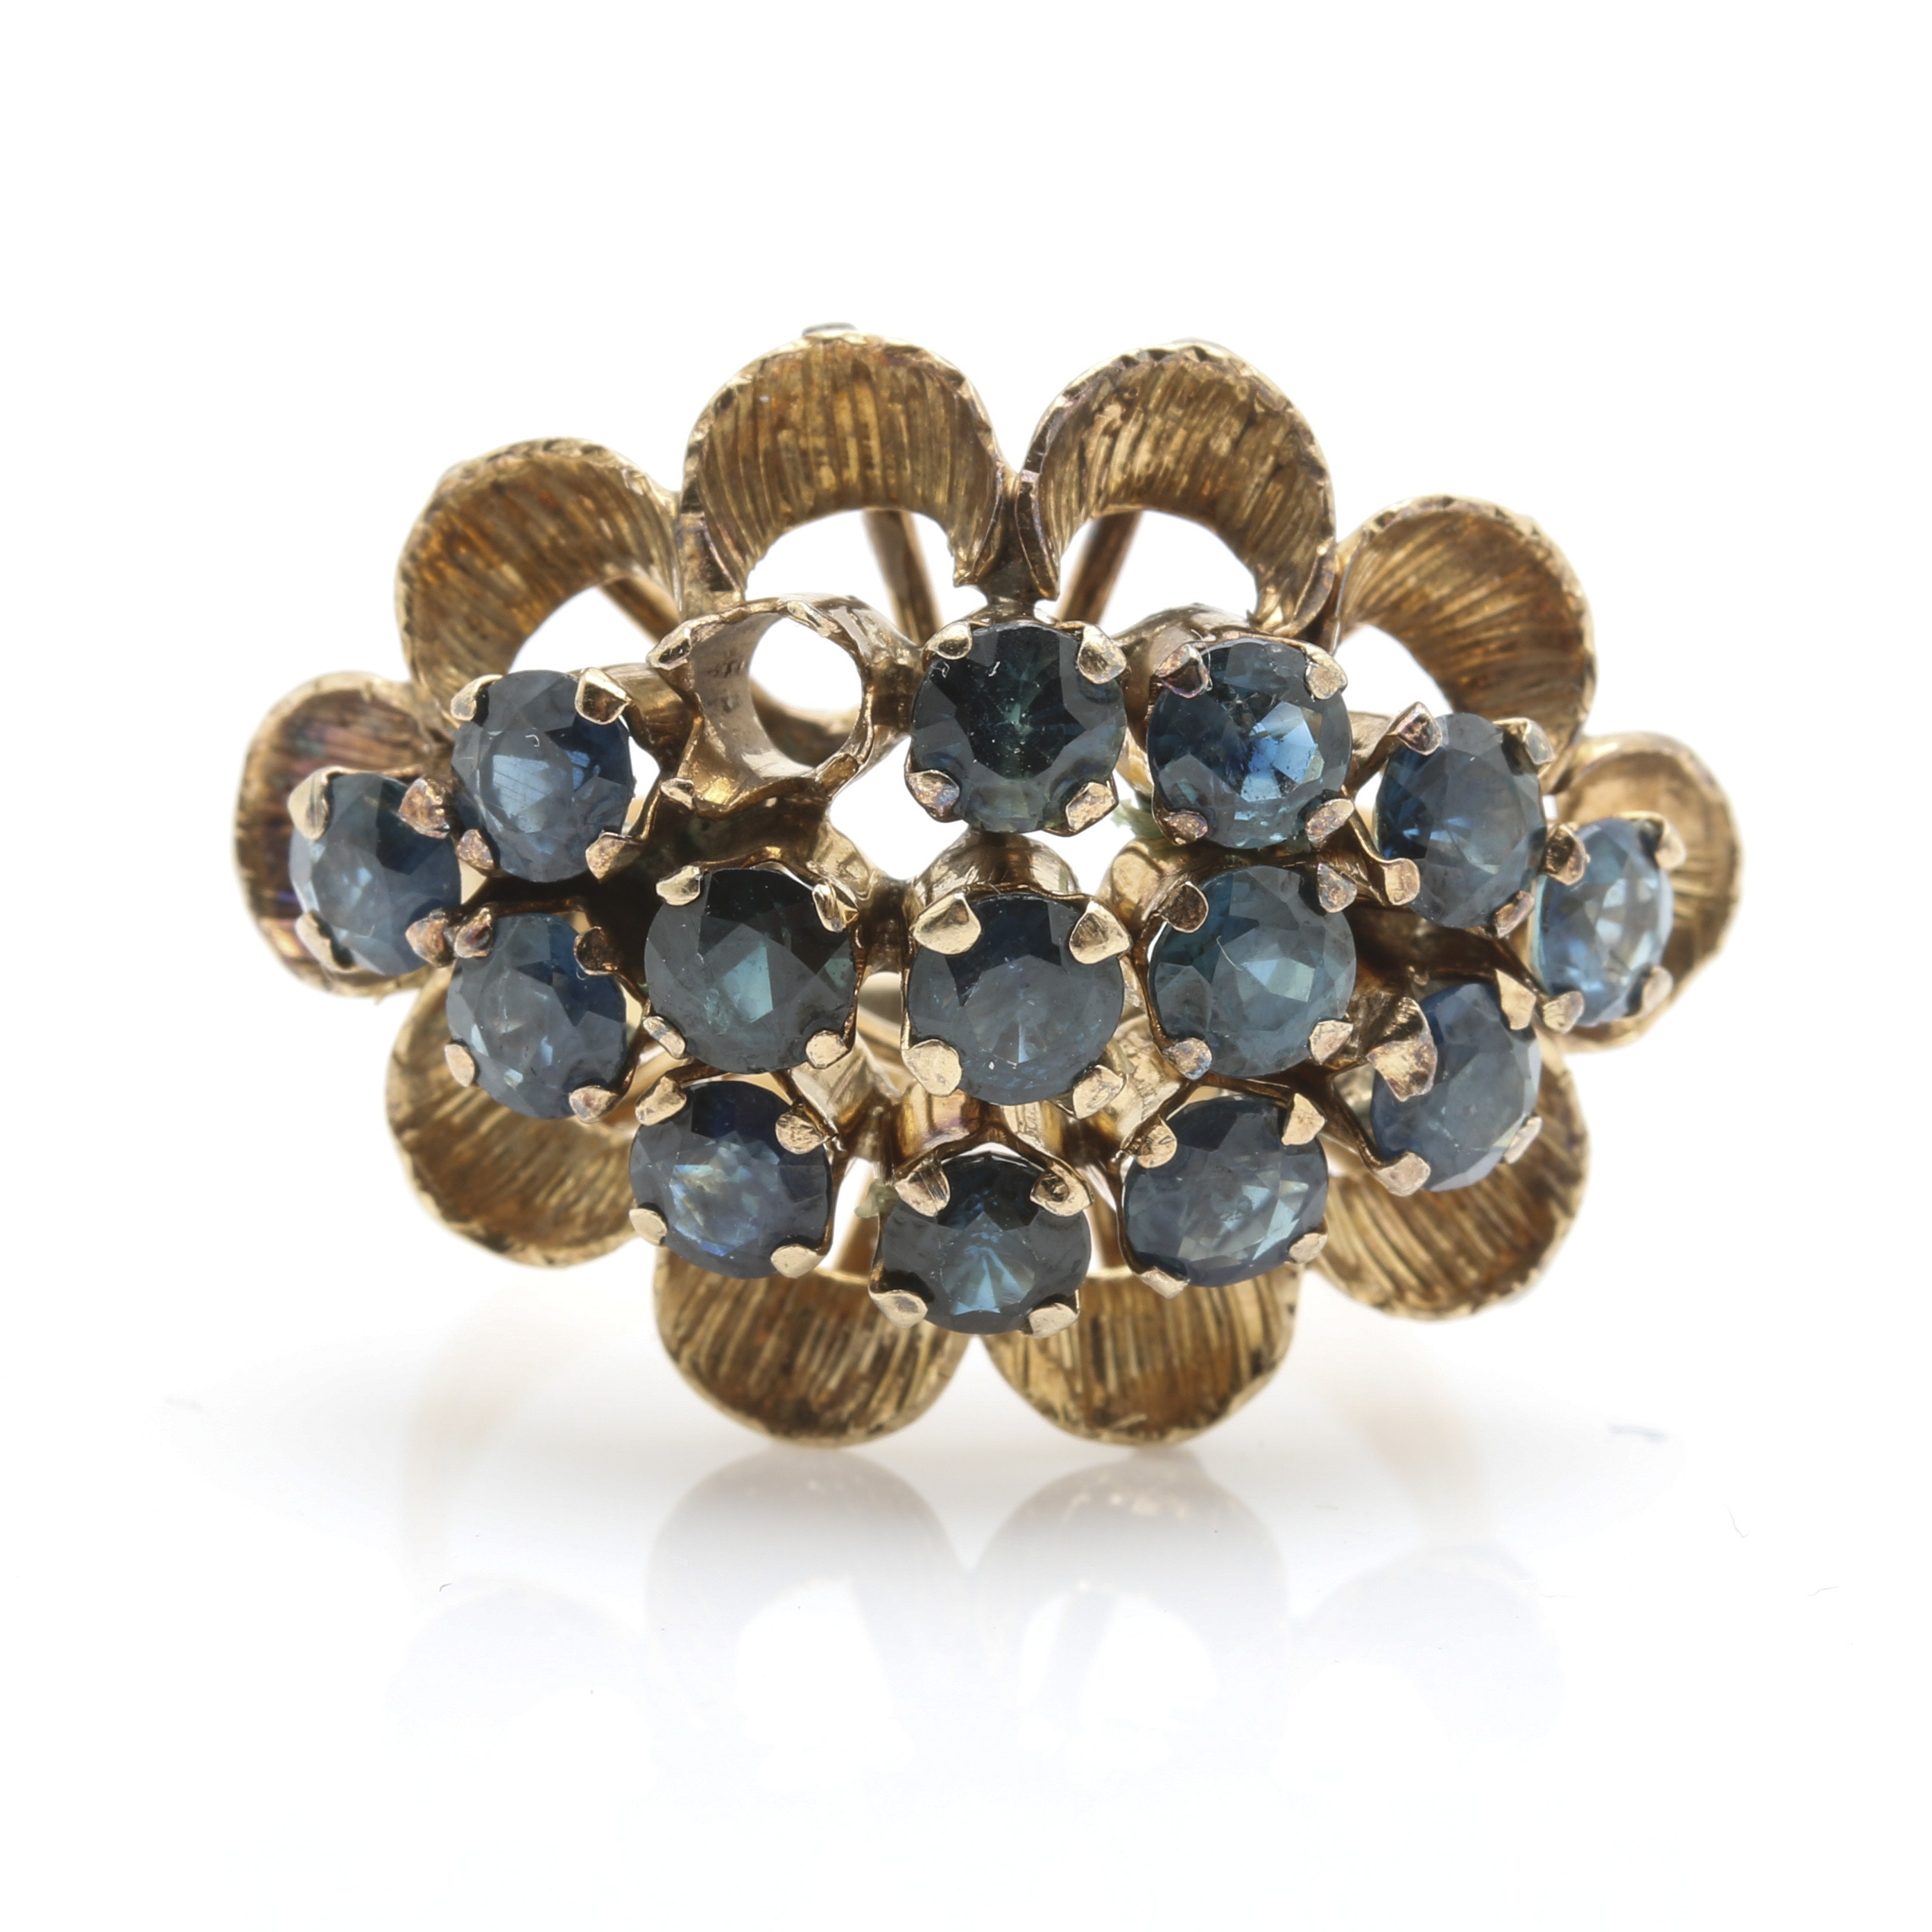 10K and 14K Yellow Gold Sapphire Cluster Ring